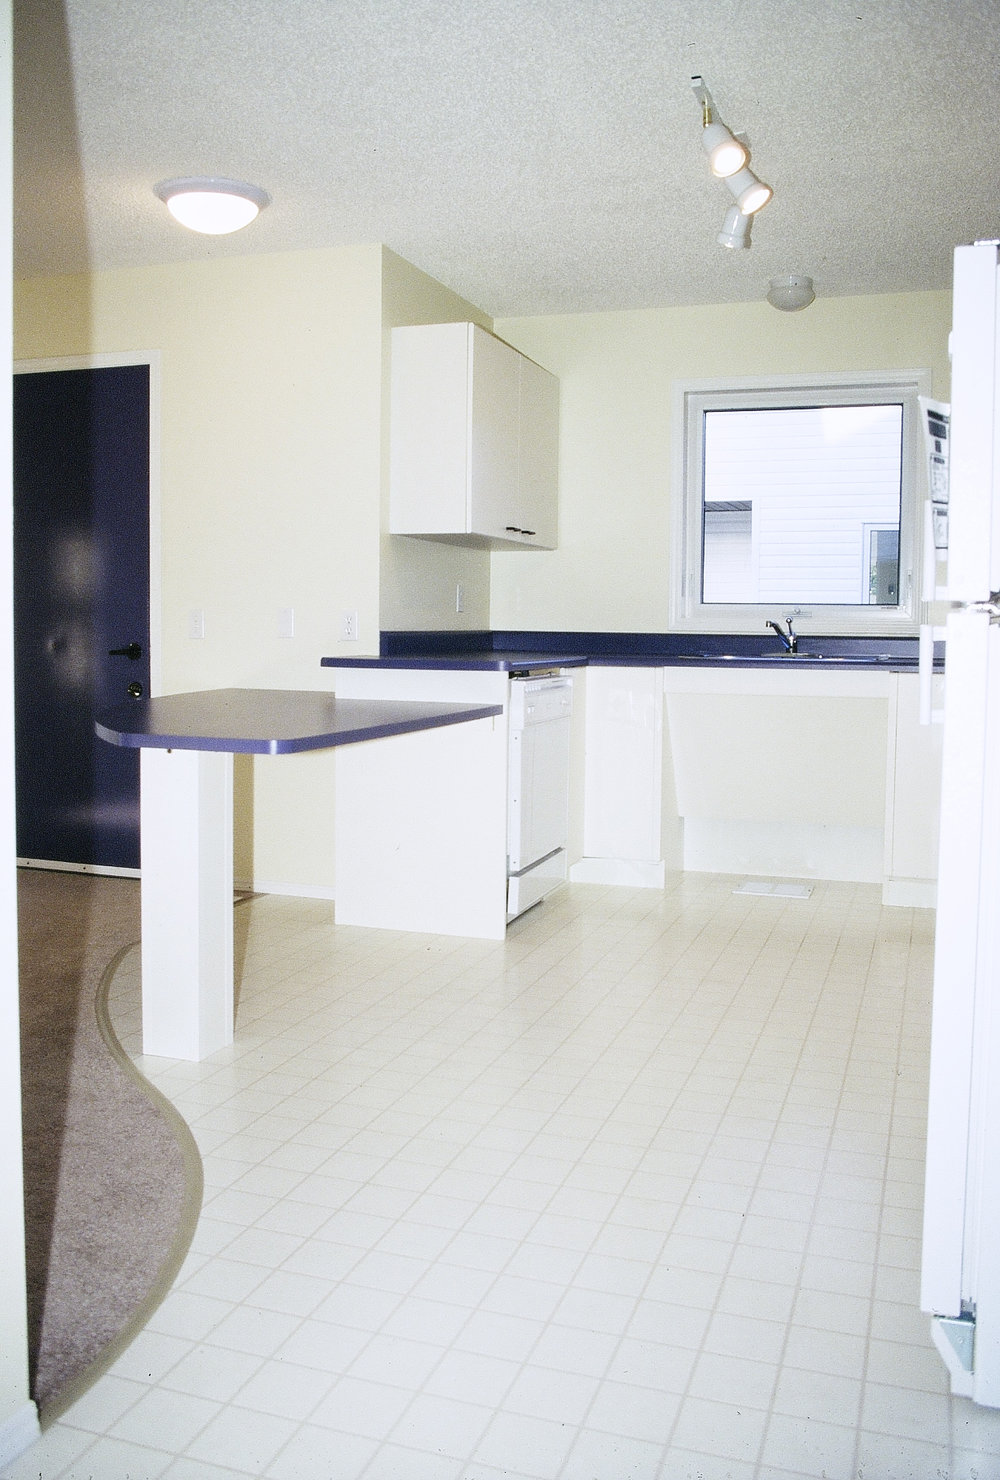 "The image above shows the kitchen area of the ground level accessible dwelling. Most of the counter height is the standard 3'-0"" from the floor. A lower counter, which is open underneath extends into the living space. The counter can serve as a workspace and eating area for someone sitting in a wheelchair. The sink is open underneath for easy wheelchair access."